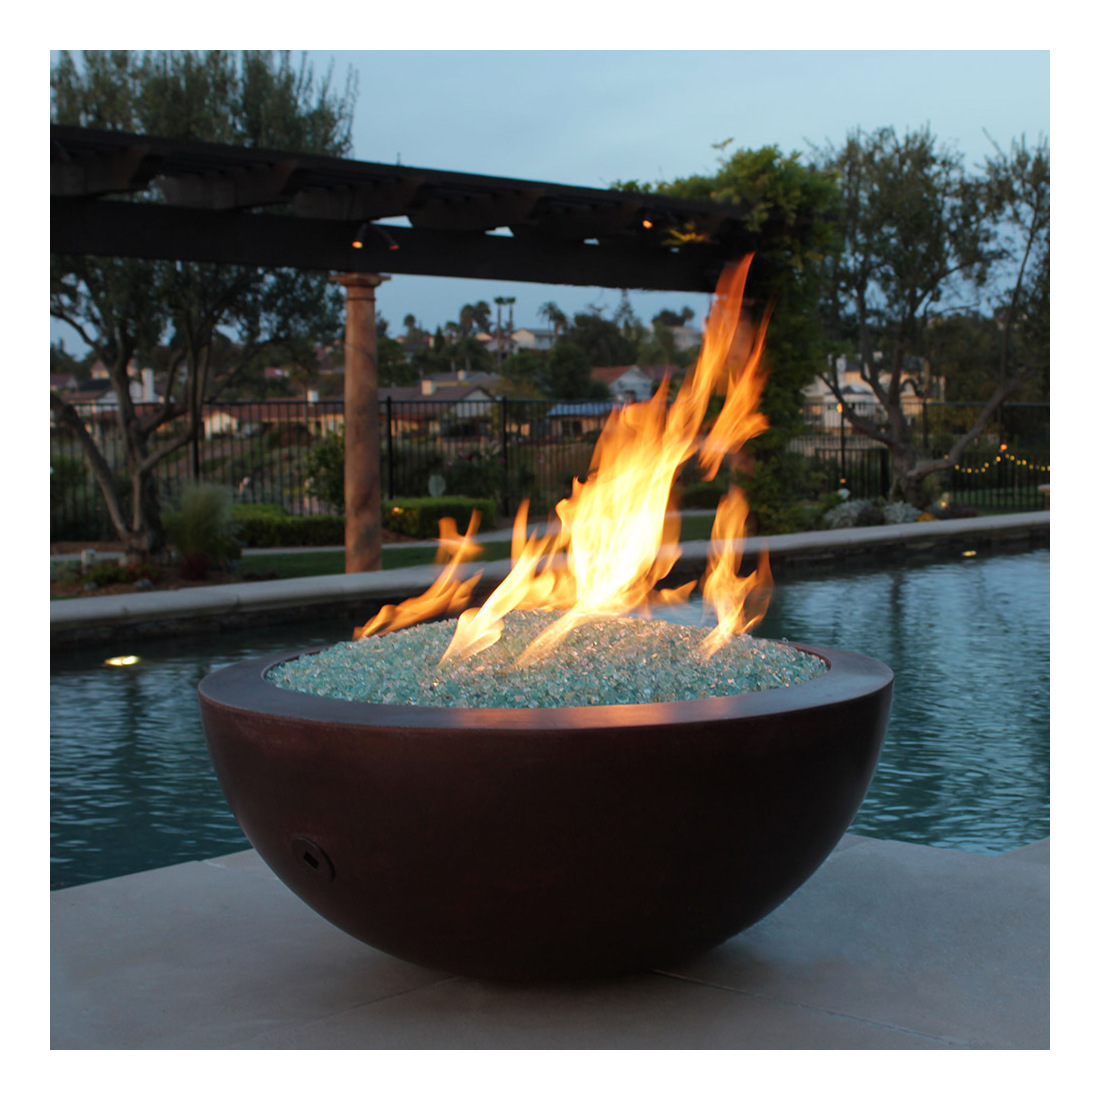 A fire bowl in the evening by a pool